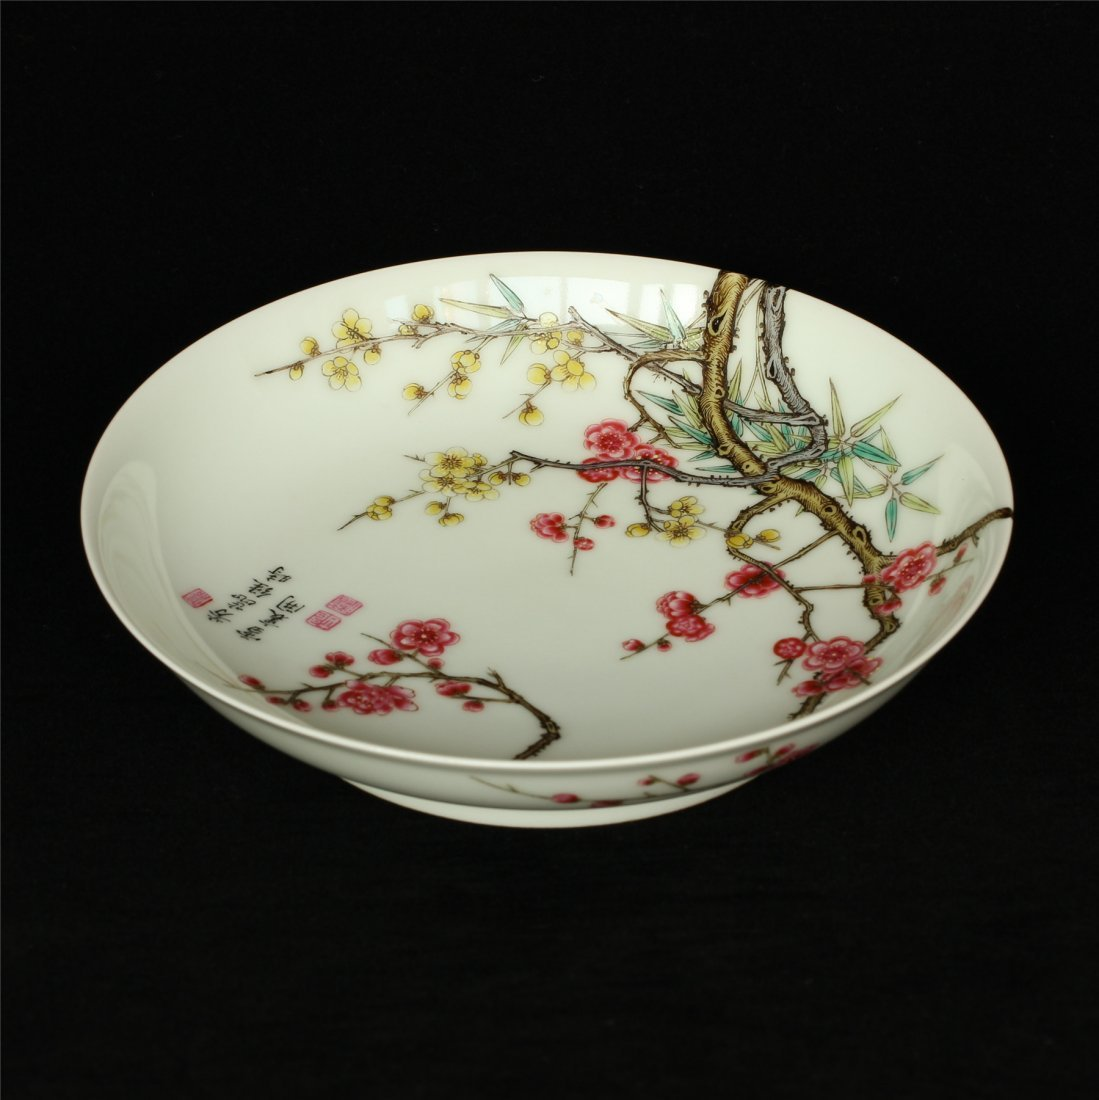 Famille rose porcelain plate of Qing Dynasty YongZheng - 10